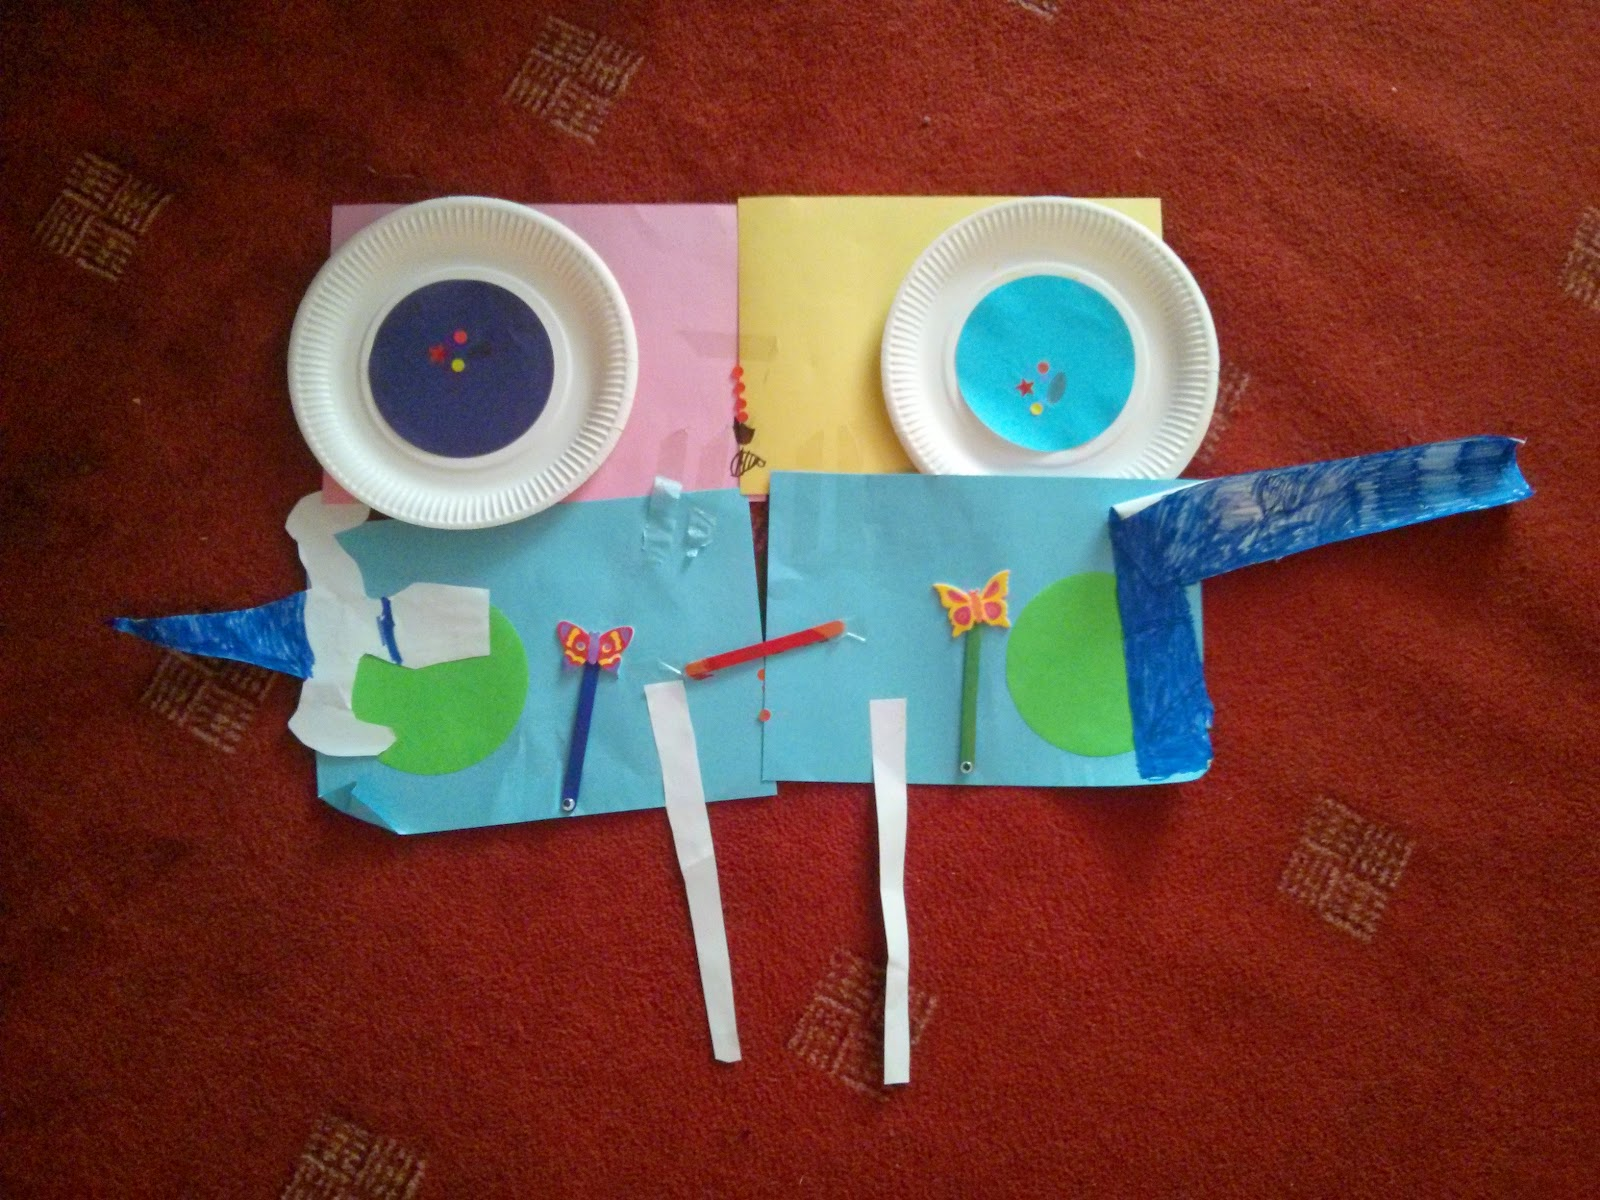 Big Boy's Paper Monster - Grrrrrrrrrrr!